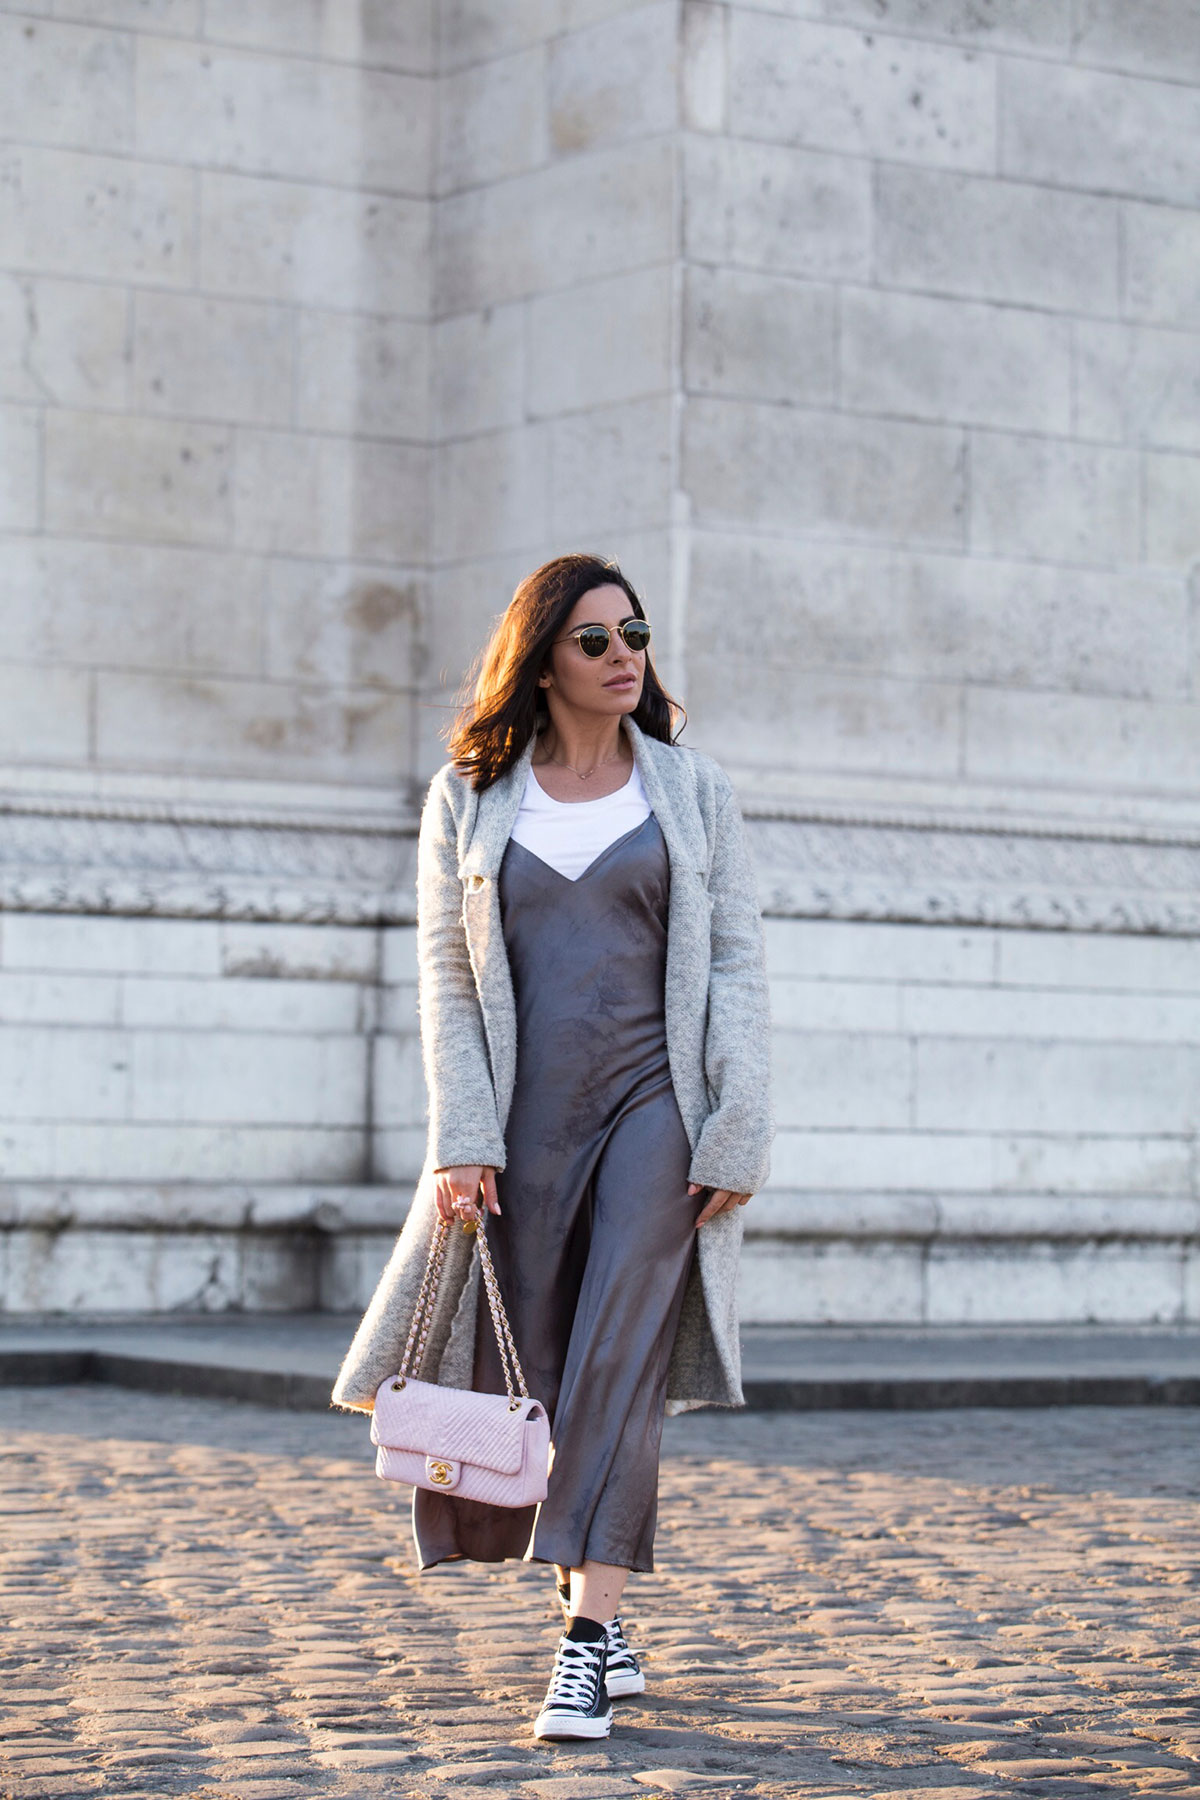 how to wear a spring dress when it's still cold - Stella Asteria Fashion & Lifestyle Blogger